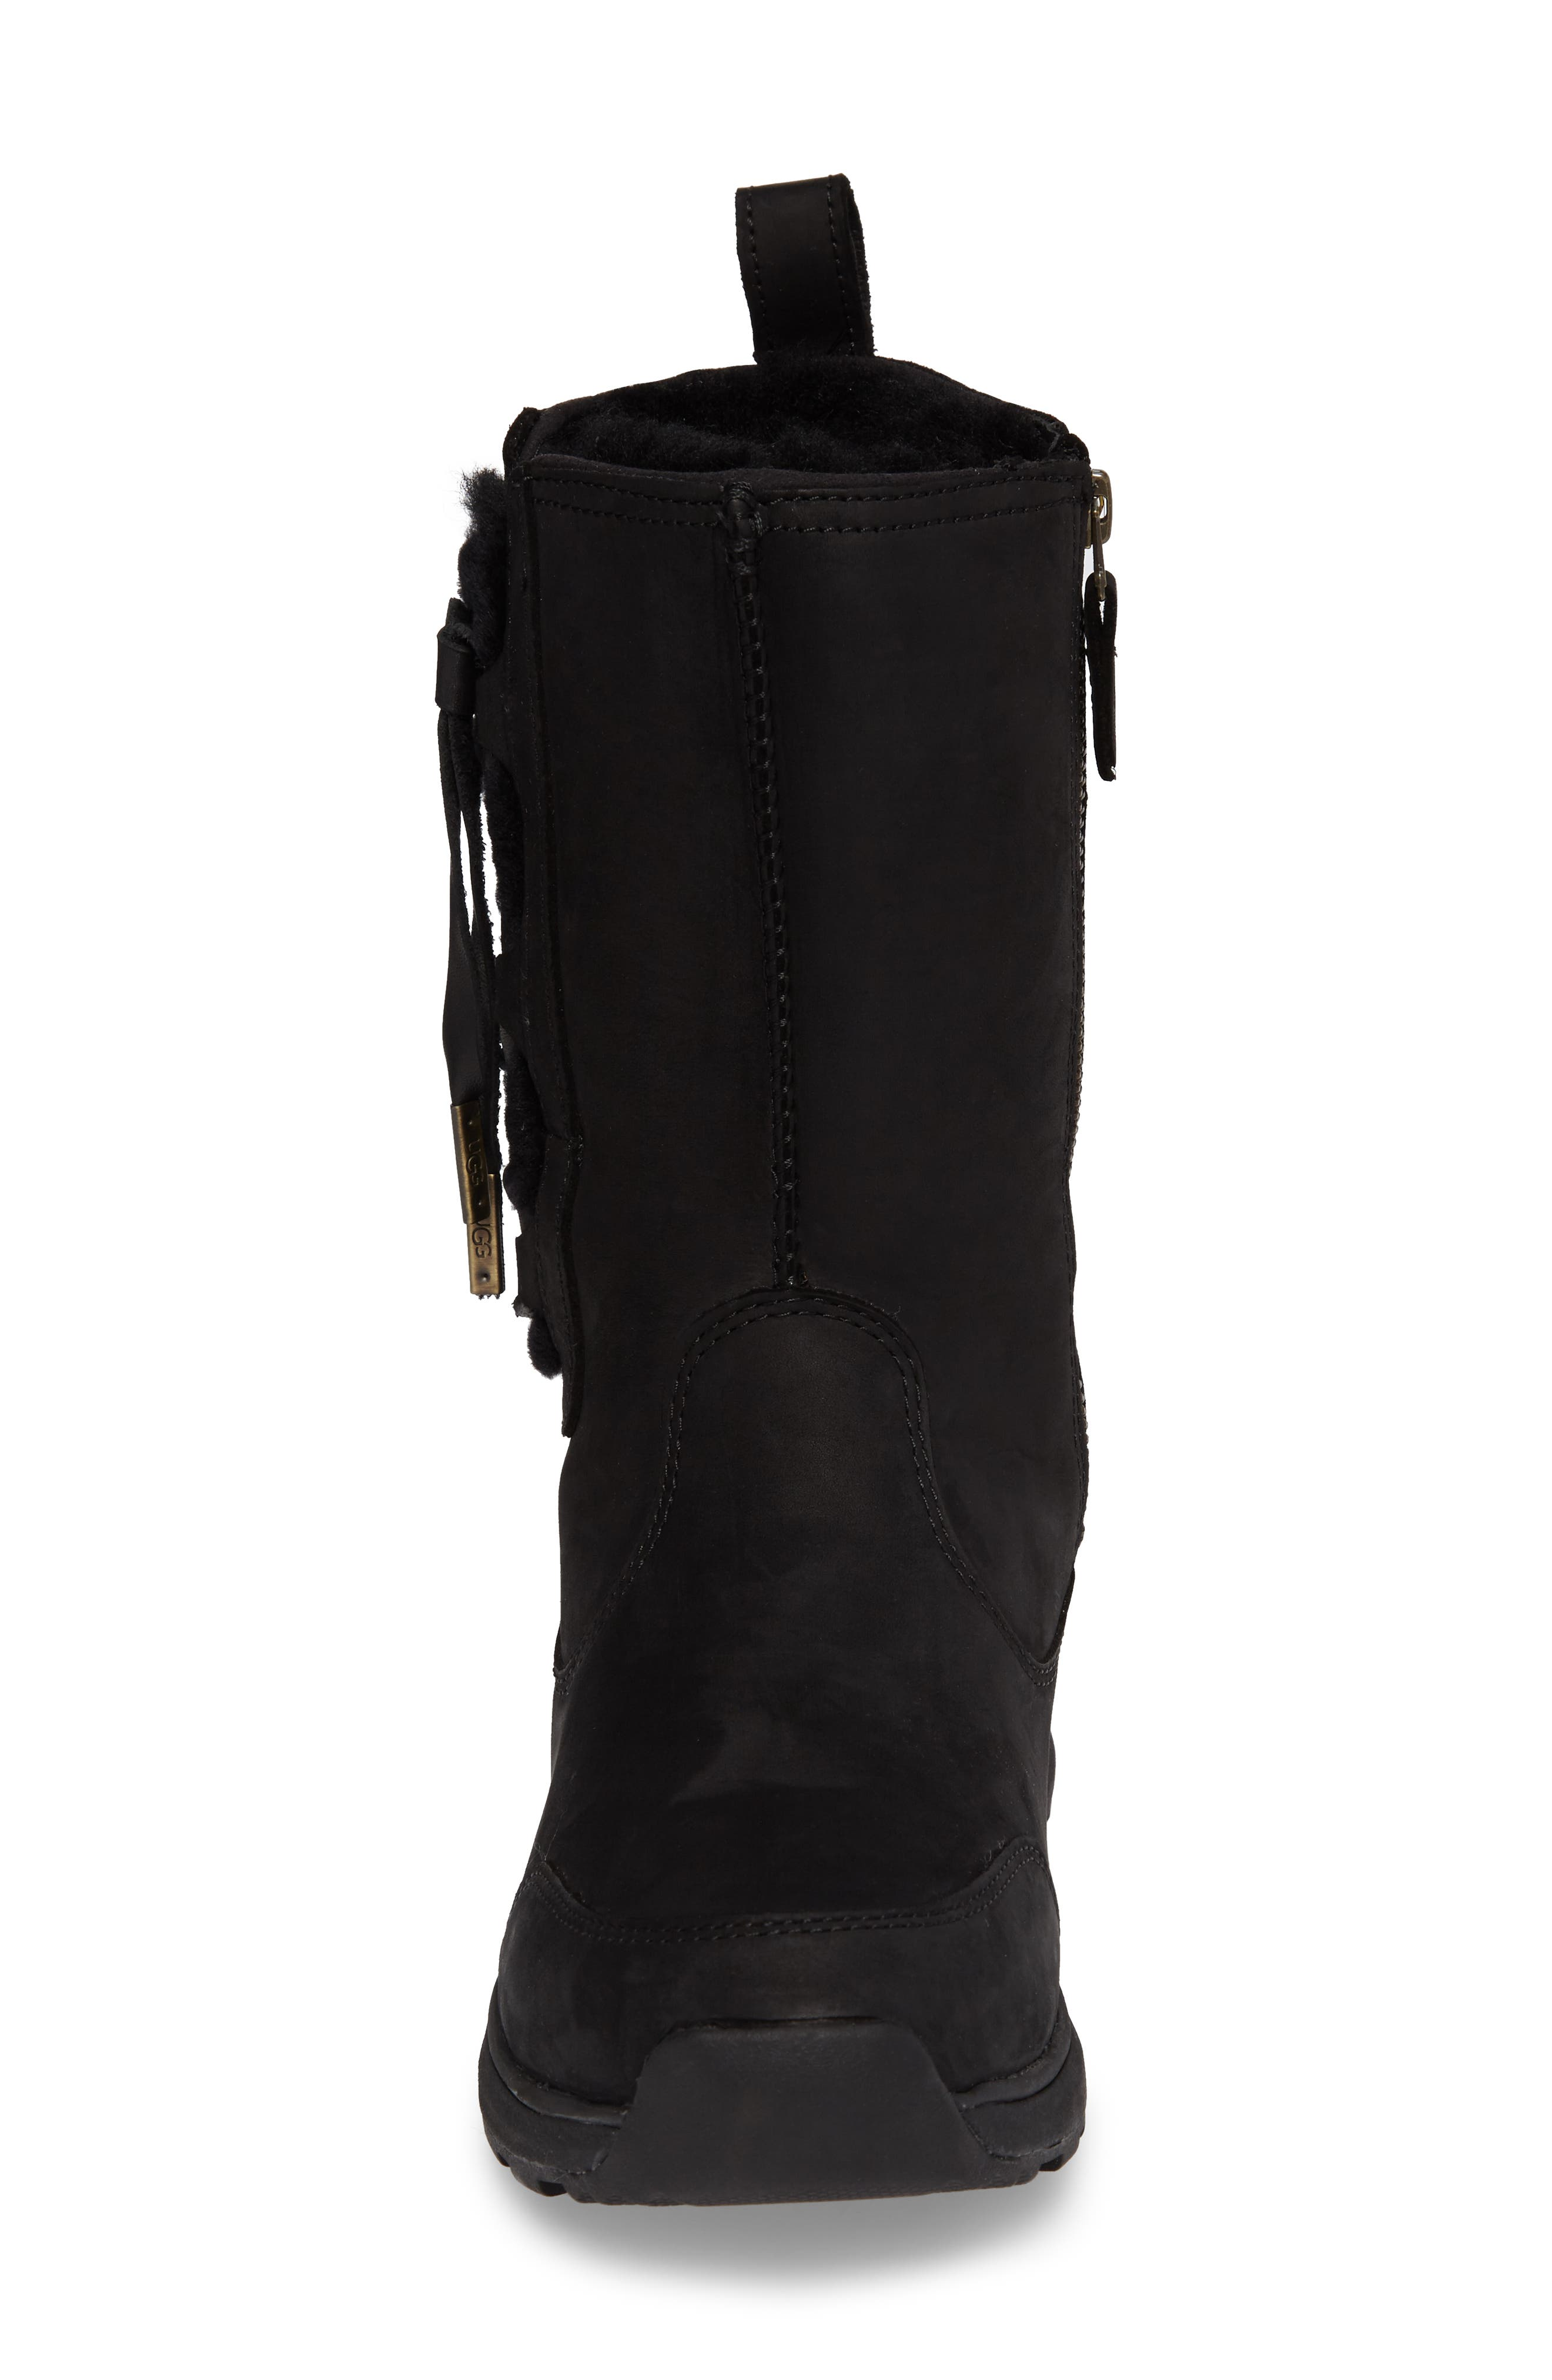 Suvi Waterproof Insulated Winter Boot,                             Alternate thumbnail 4, color,                             Black Leather